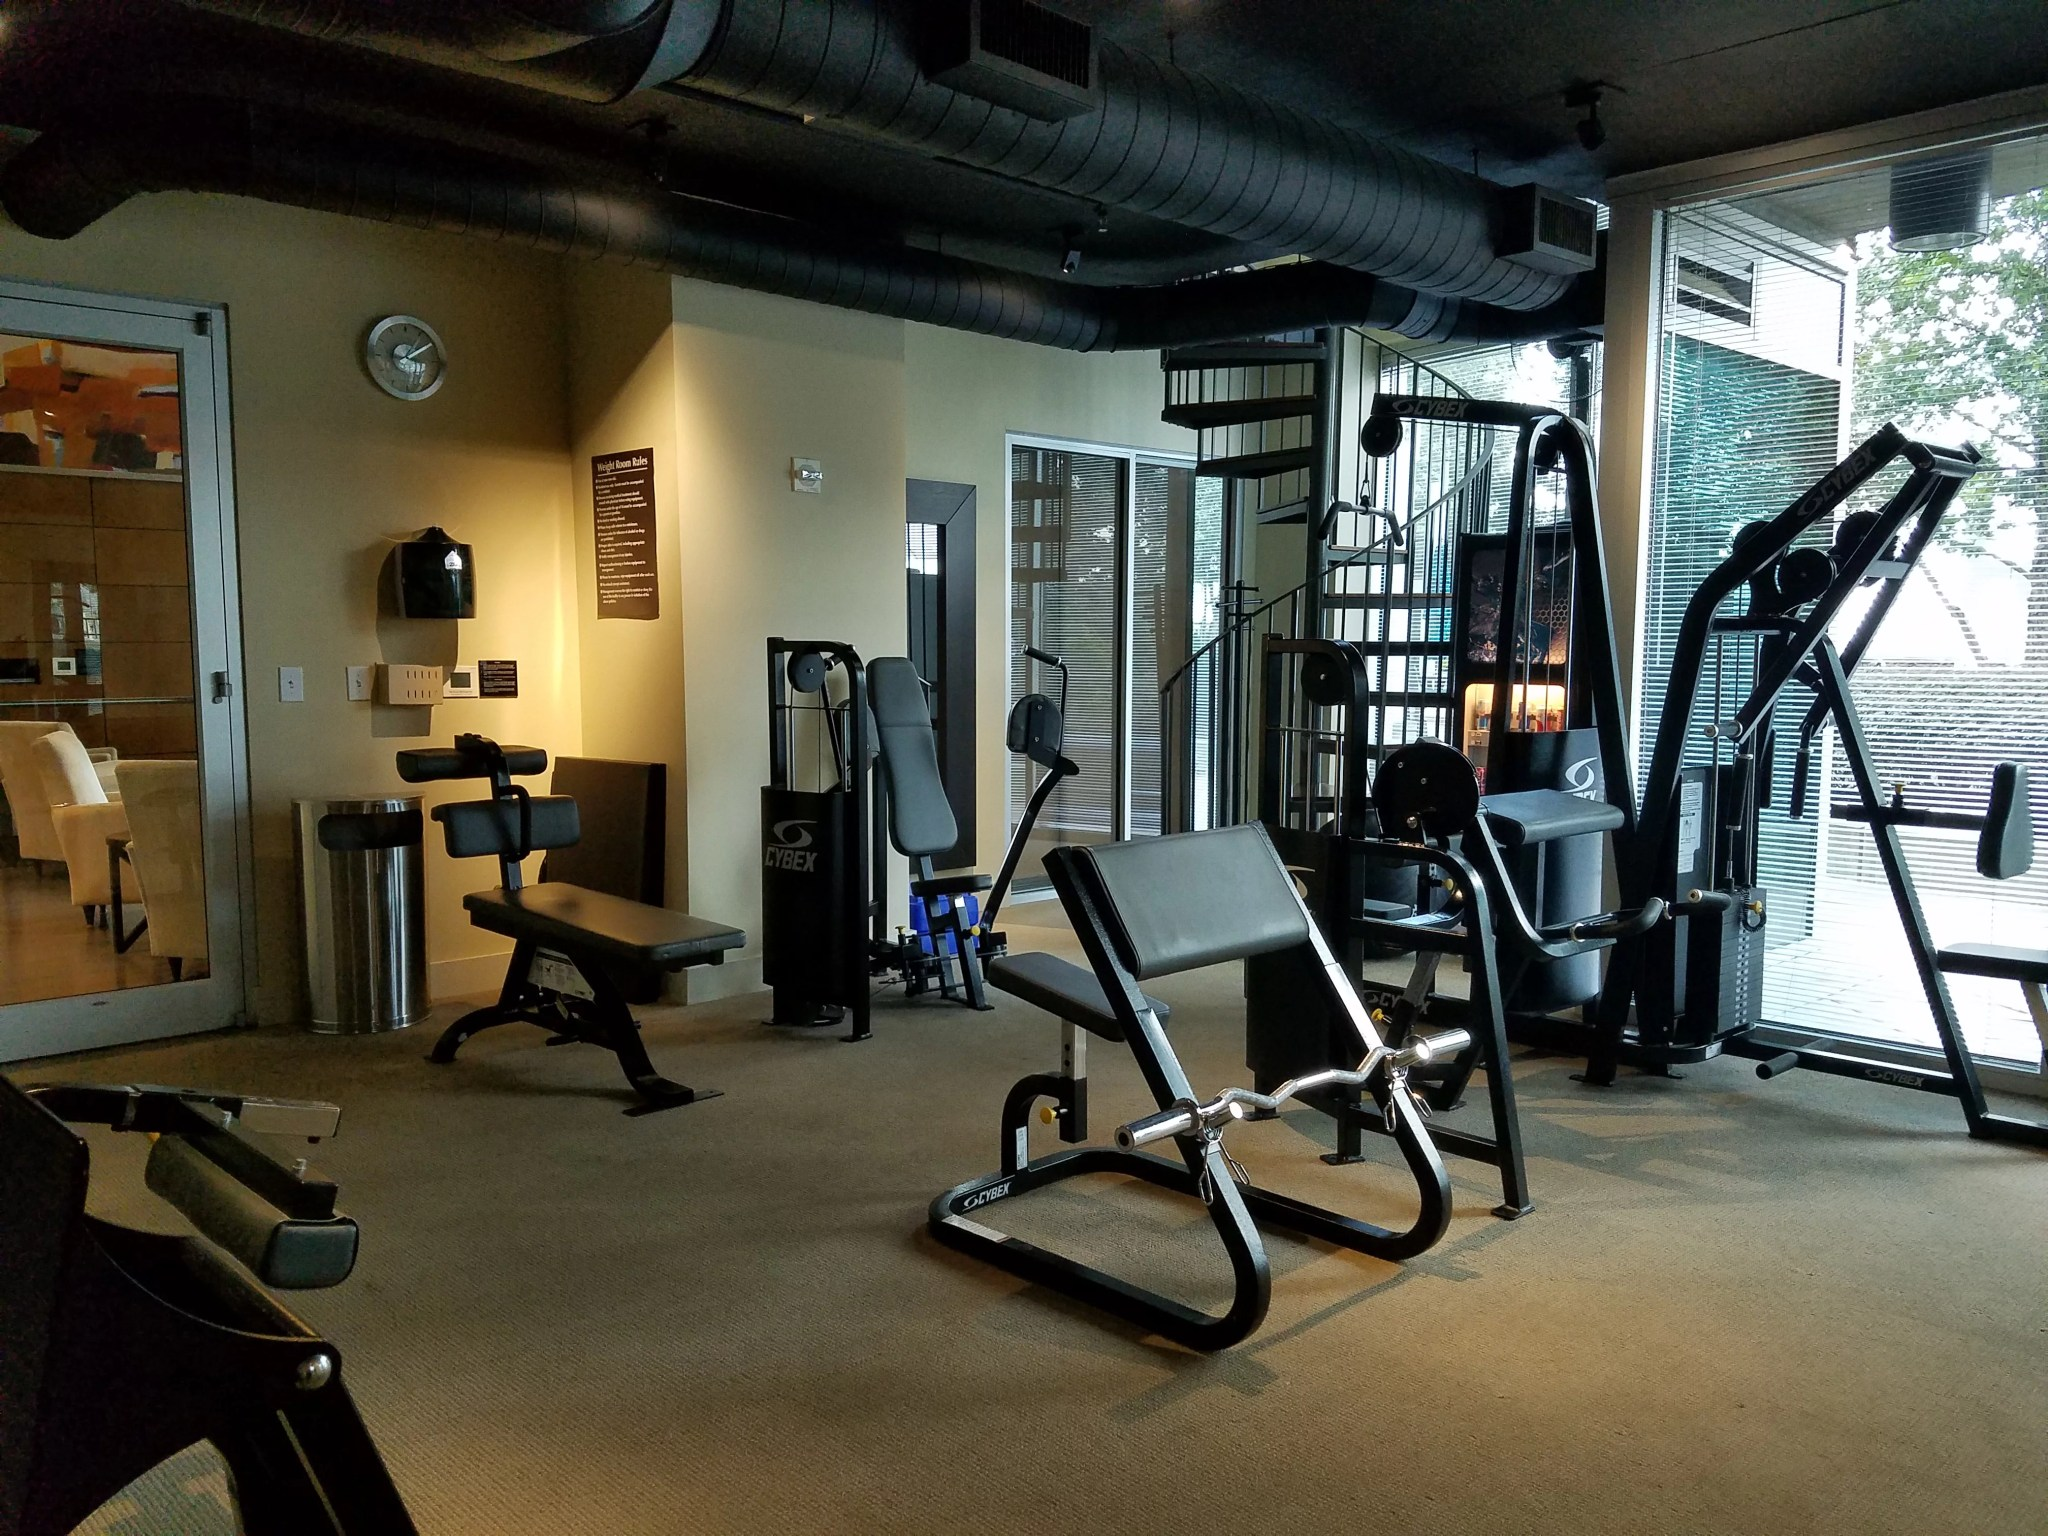 The Realm in Buckhead Gym and Fitness Room equipment